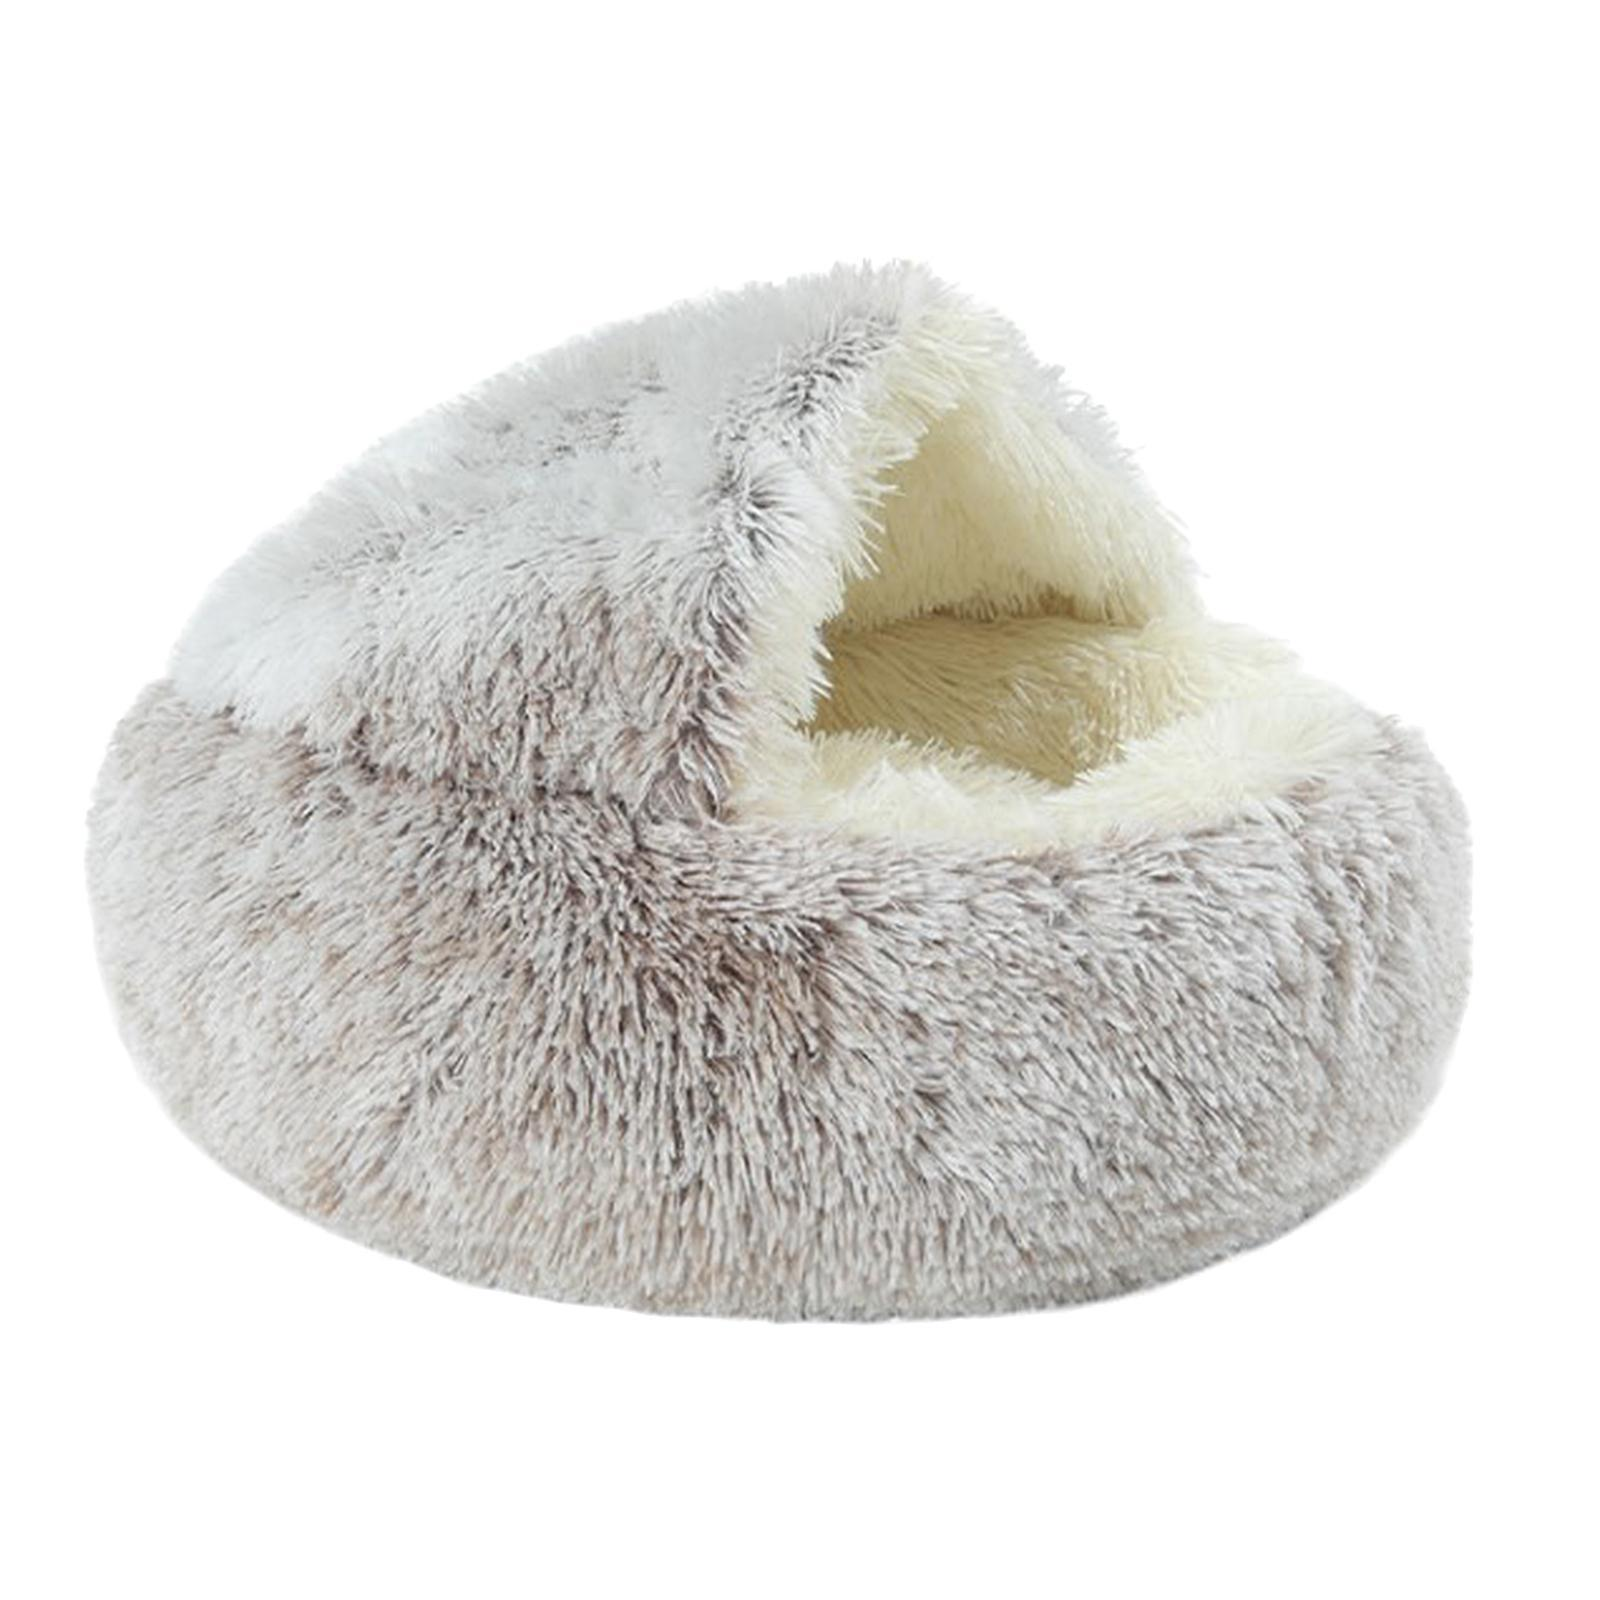 miniature 44 - Pet Chien Chat Calmant Lit Rond Nid Chaud En Peluche Confortable de Couchage